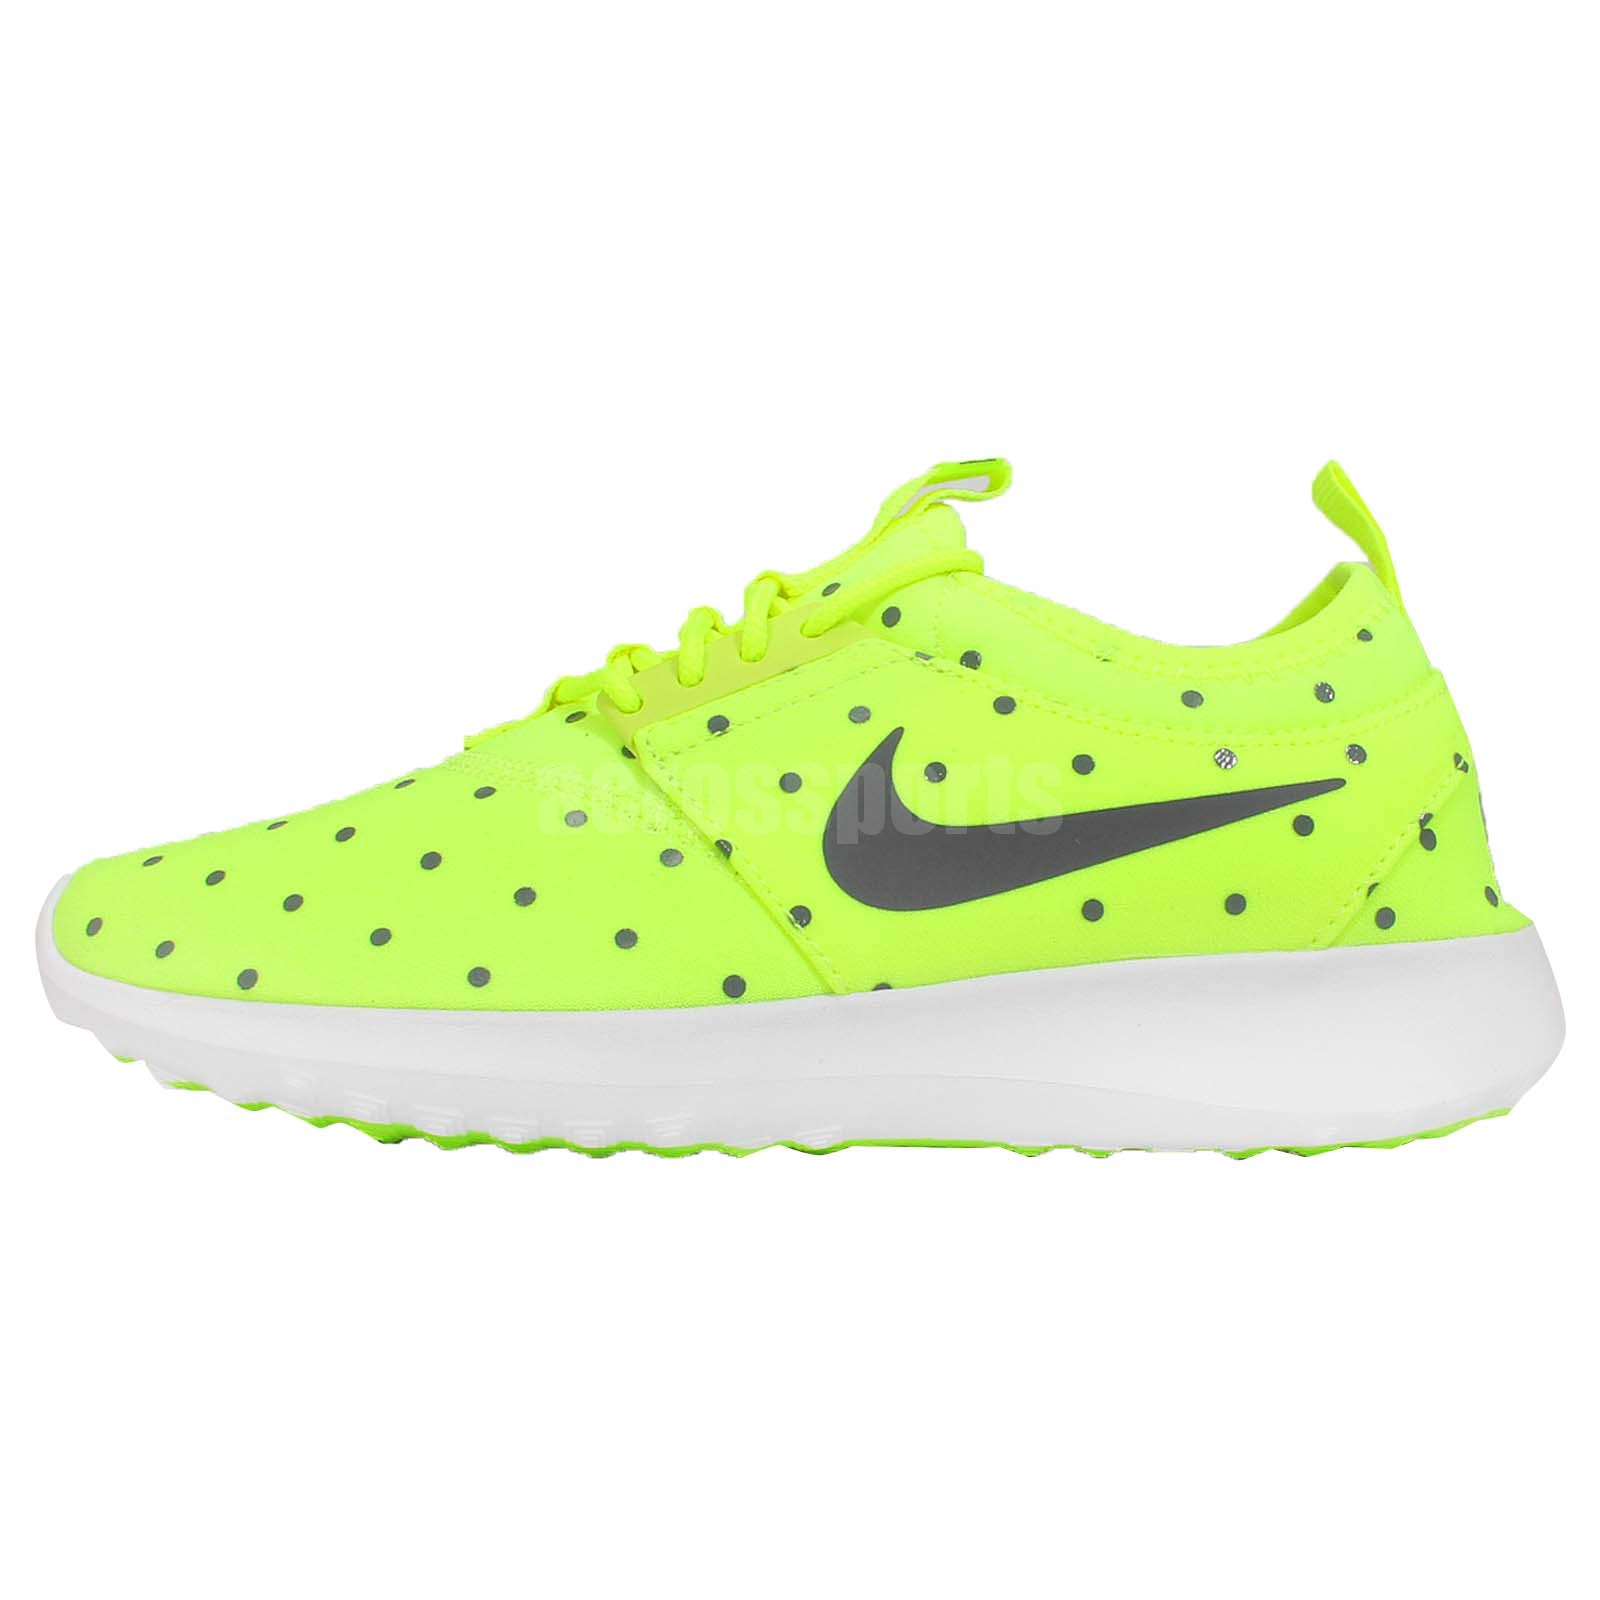 Beautiful Sole Unit Which PicksShop Zappos To Find The Perfect Pair Of Nike Shoes You Have Been Looking For Nike Roshe Run Mesh Black White Polka Dot Sole Womens MensThen He Walked Rapidly Along Beside The Chains At Some Distance And